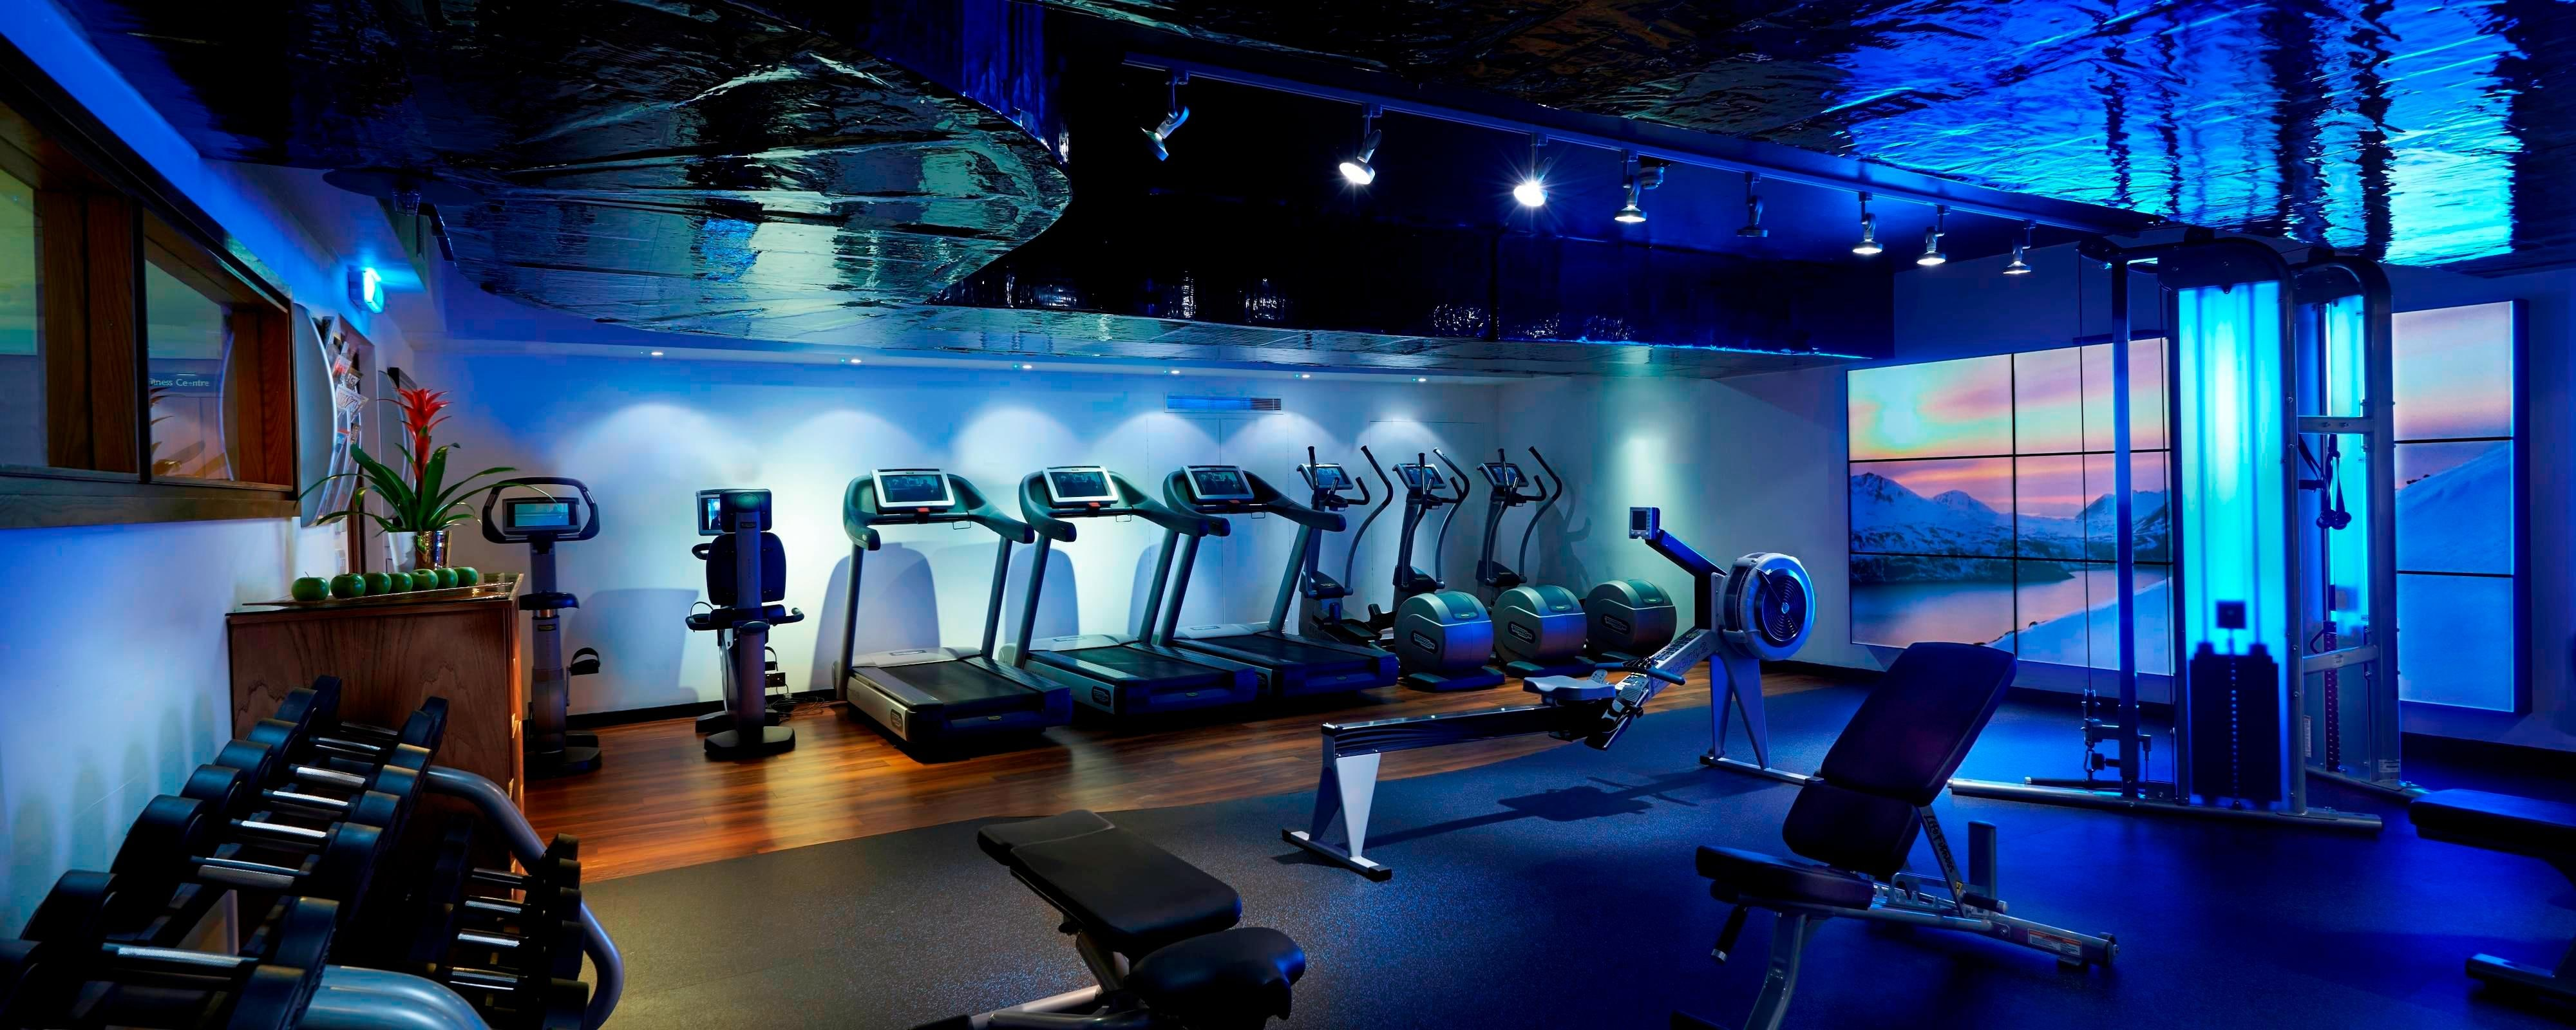 Hour gyms in colindale the gym group